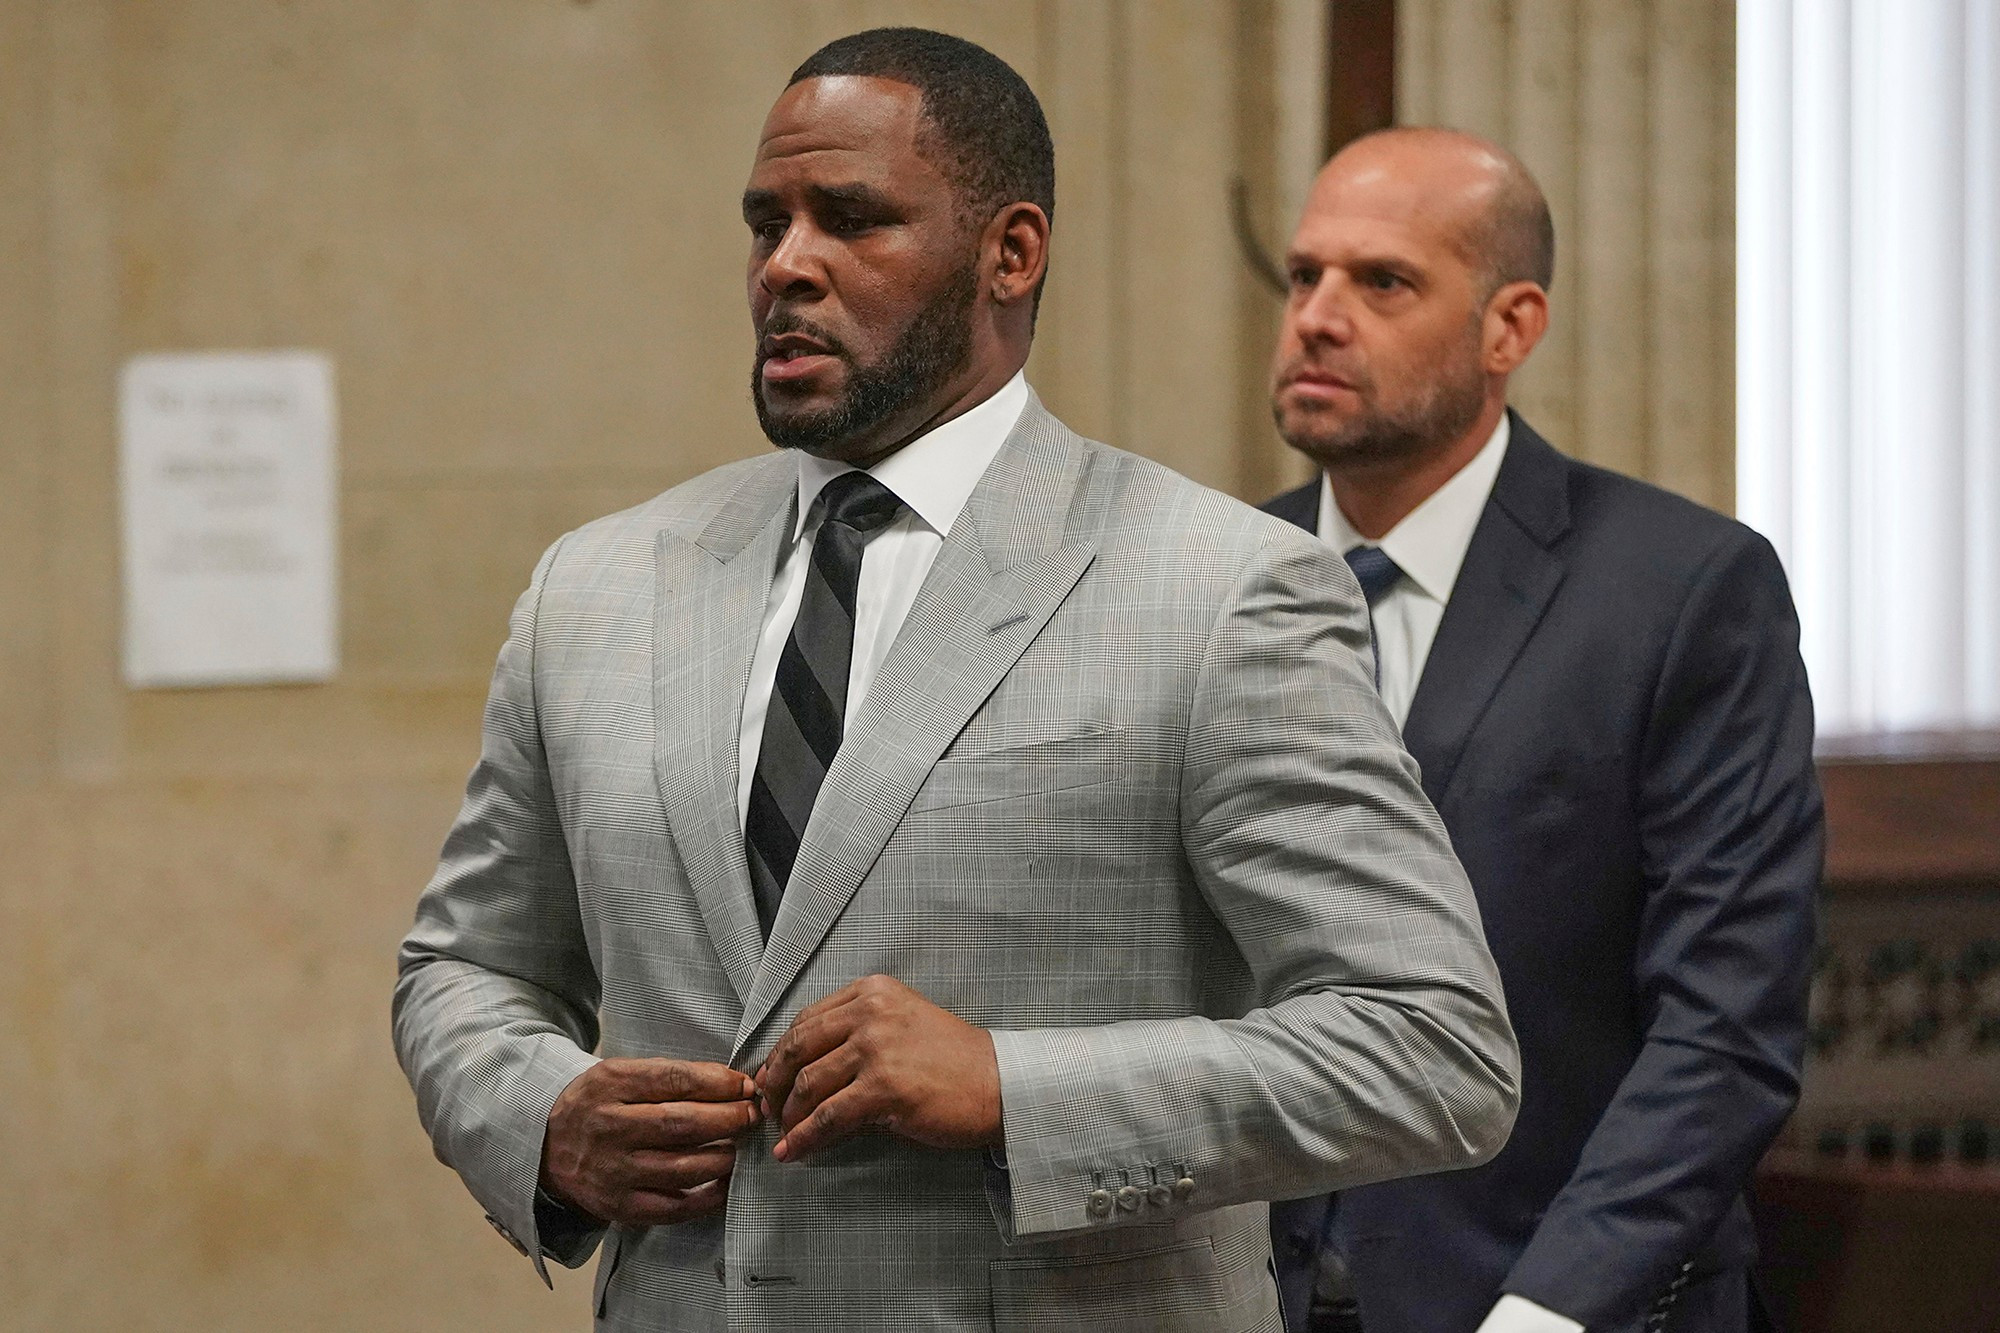 R.Kelly's Attorney compares him to Dr. Martin Luther King Jr. in closing Arguments for his trail